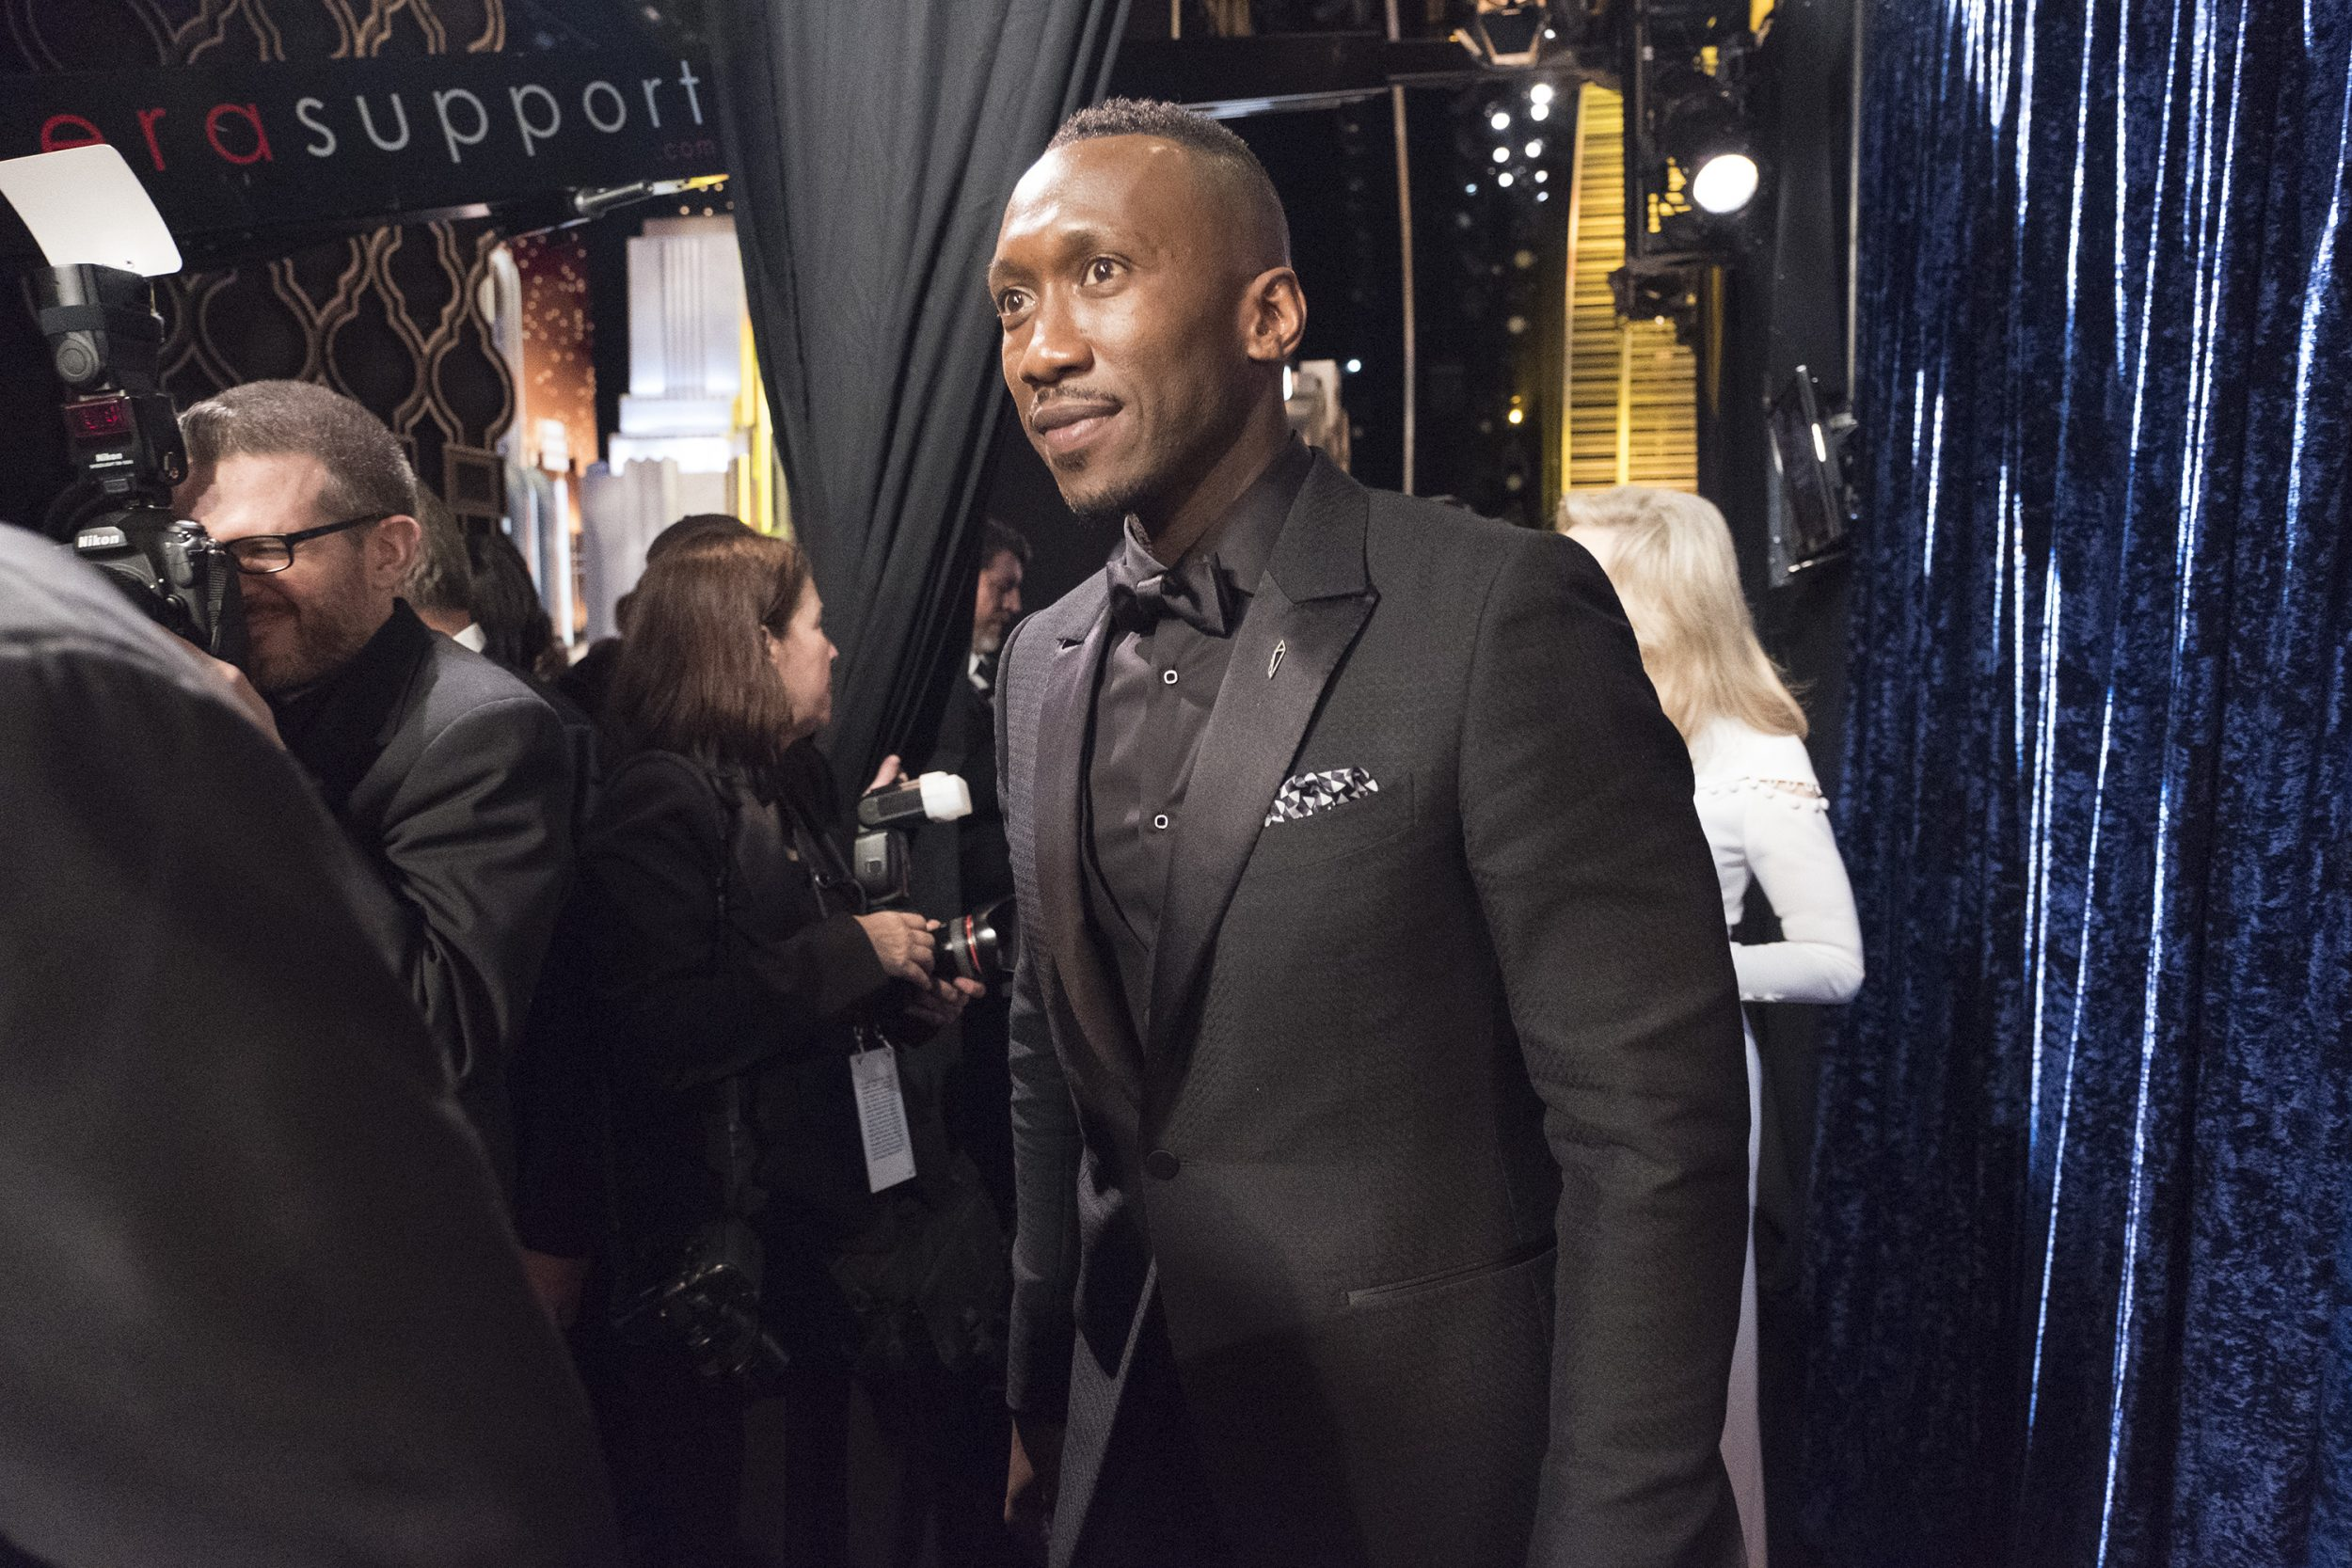 THE OSCARS(r) - The 89th Oscars(r)  broadcasts live on Oscar(r) SUNDAY, FEBRUARY 26, 2017, on the ABC Television Network. (ABC/Adam Rose) MAHERSHALA ALI